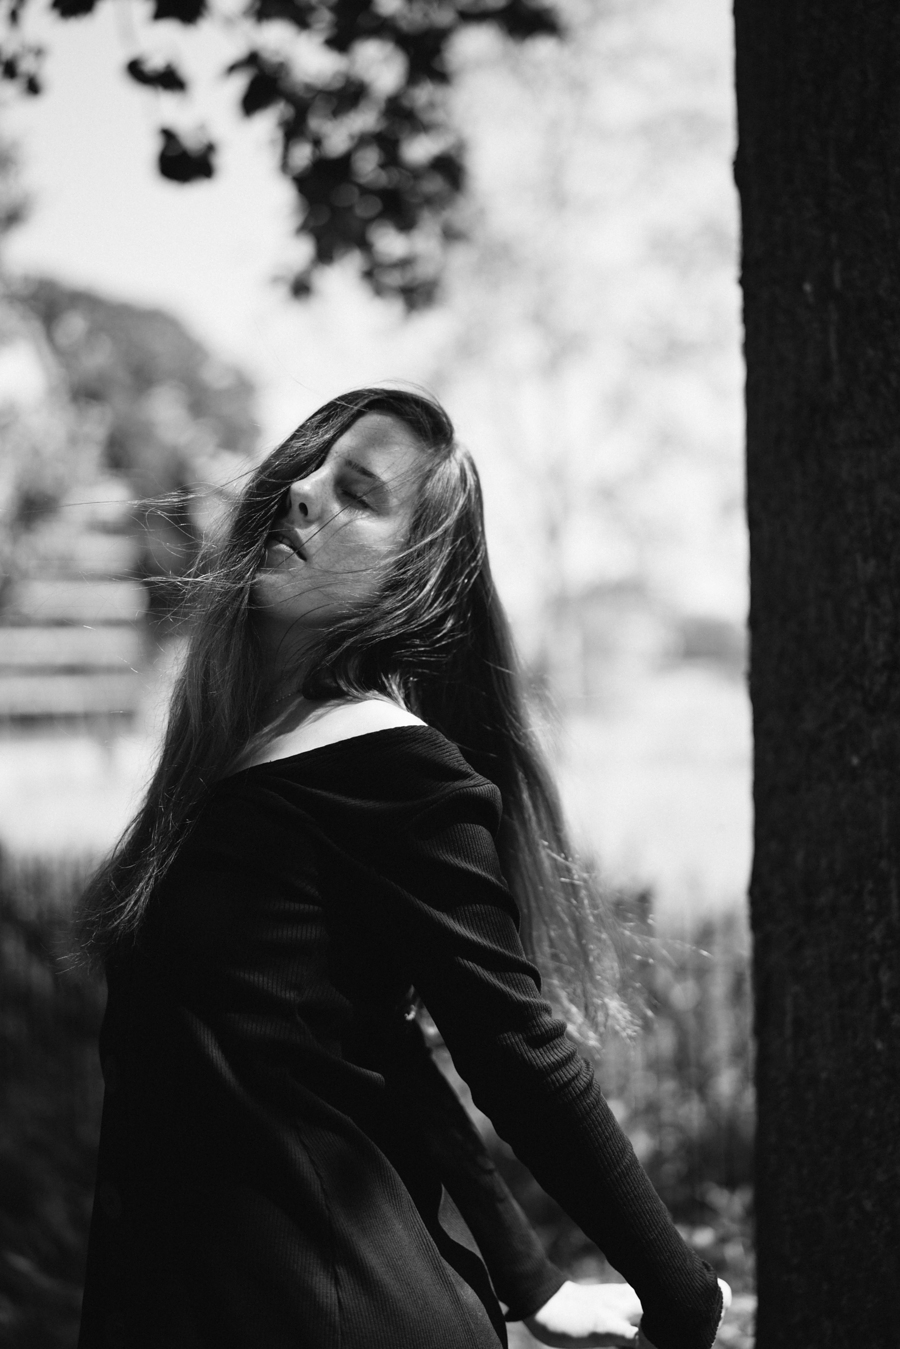 Photography by AK Portraits, Model Patrycja / Uploaded 26th June 2020 @ 04:30 PM